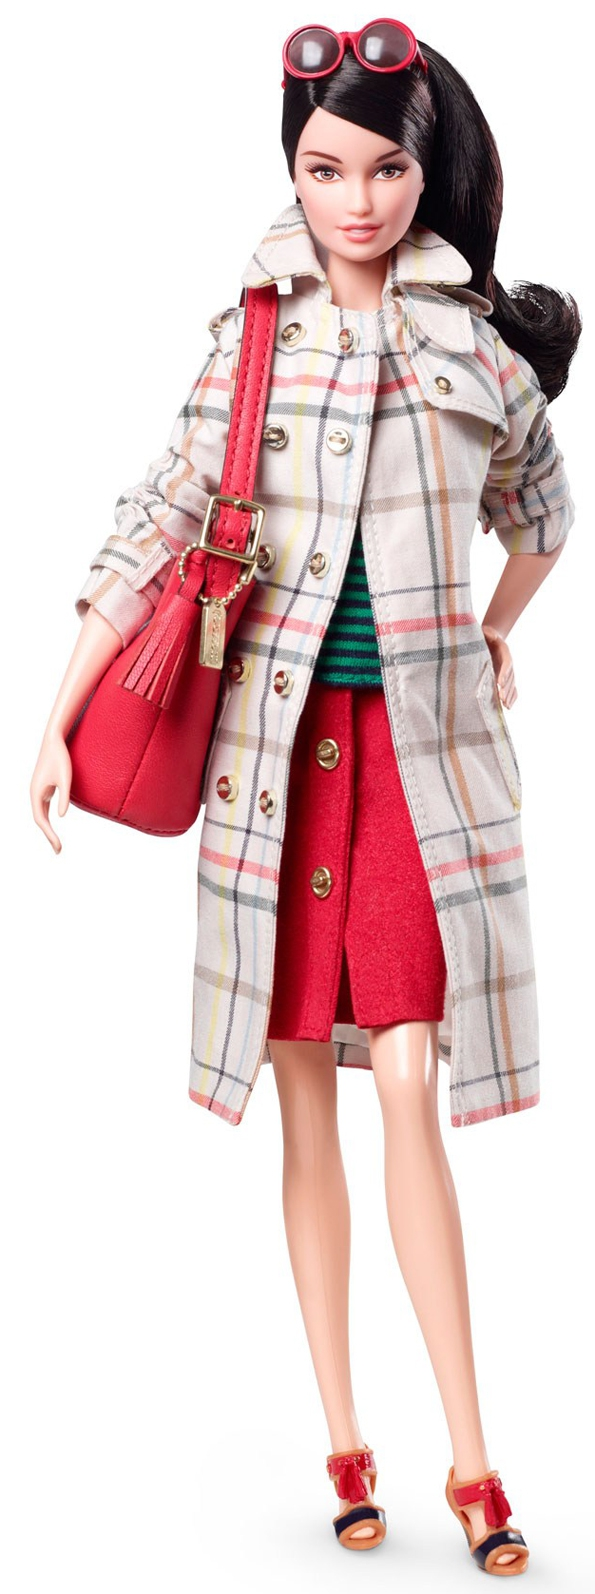 coach,legacy collection,legacy,collection,collection héritage,sacs,bags,maroquinerie,leather,chic,new-york,américain,american,usa,preppy,anniversary,blog,mode,fashion,luxury,luxe,barbie,trench,mode,jouet,rare,limited edition